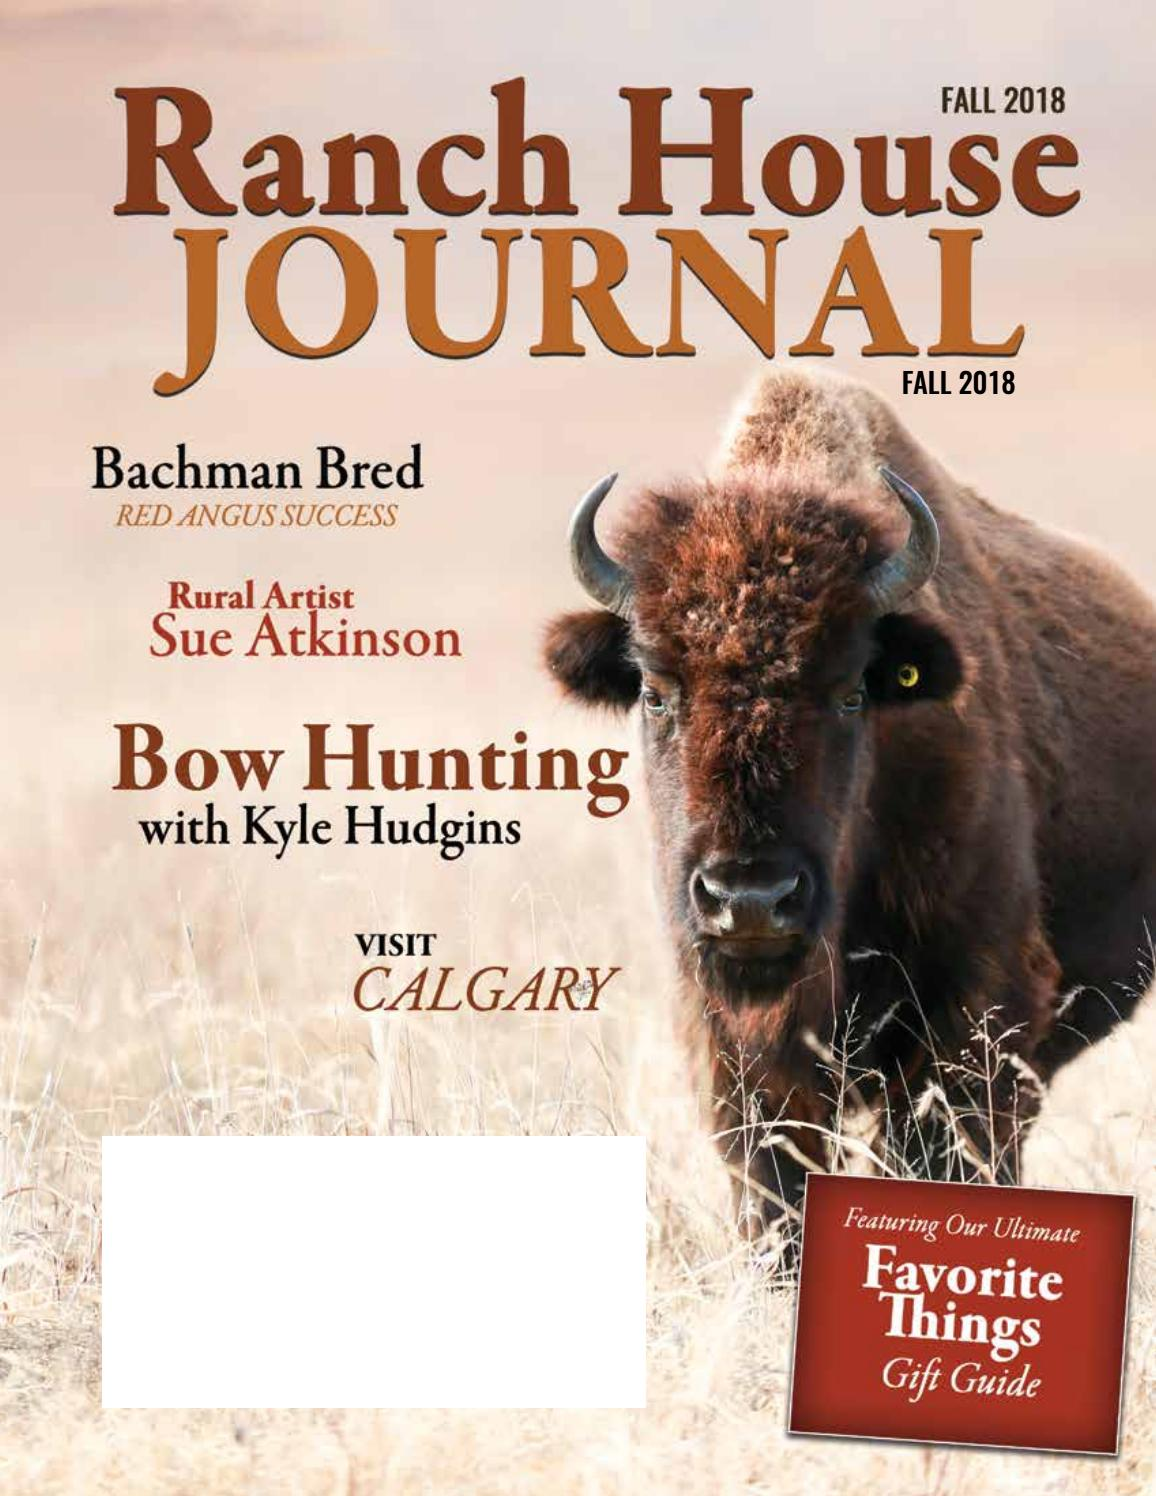 Ranch House Journal Fall 2018 by Ranch House Designs - issuu